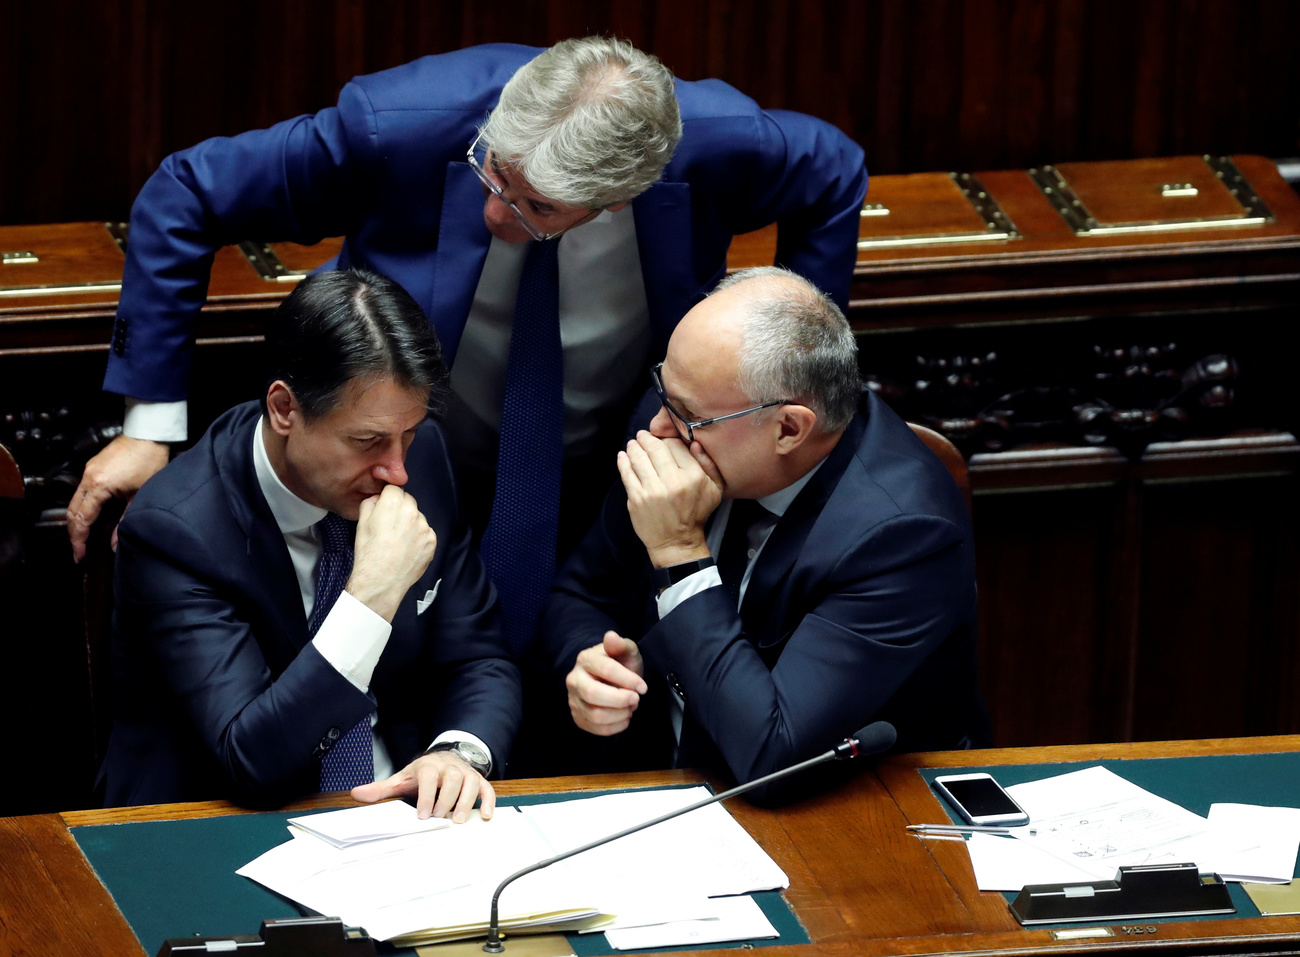 Italian Prime Minister Giuseppe Conte talks to Paolo Gentiloni and Economy Minister Roberto Gualtieri as they wait during a confidence vote at the Parliament in Rome, Italy, September 9, 2019. REUTERS/Remo Casilli